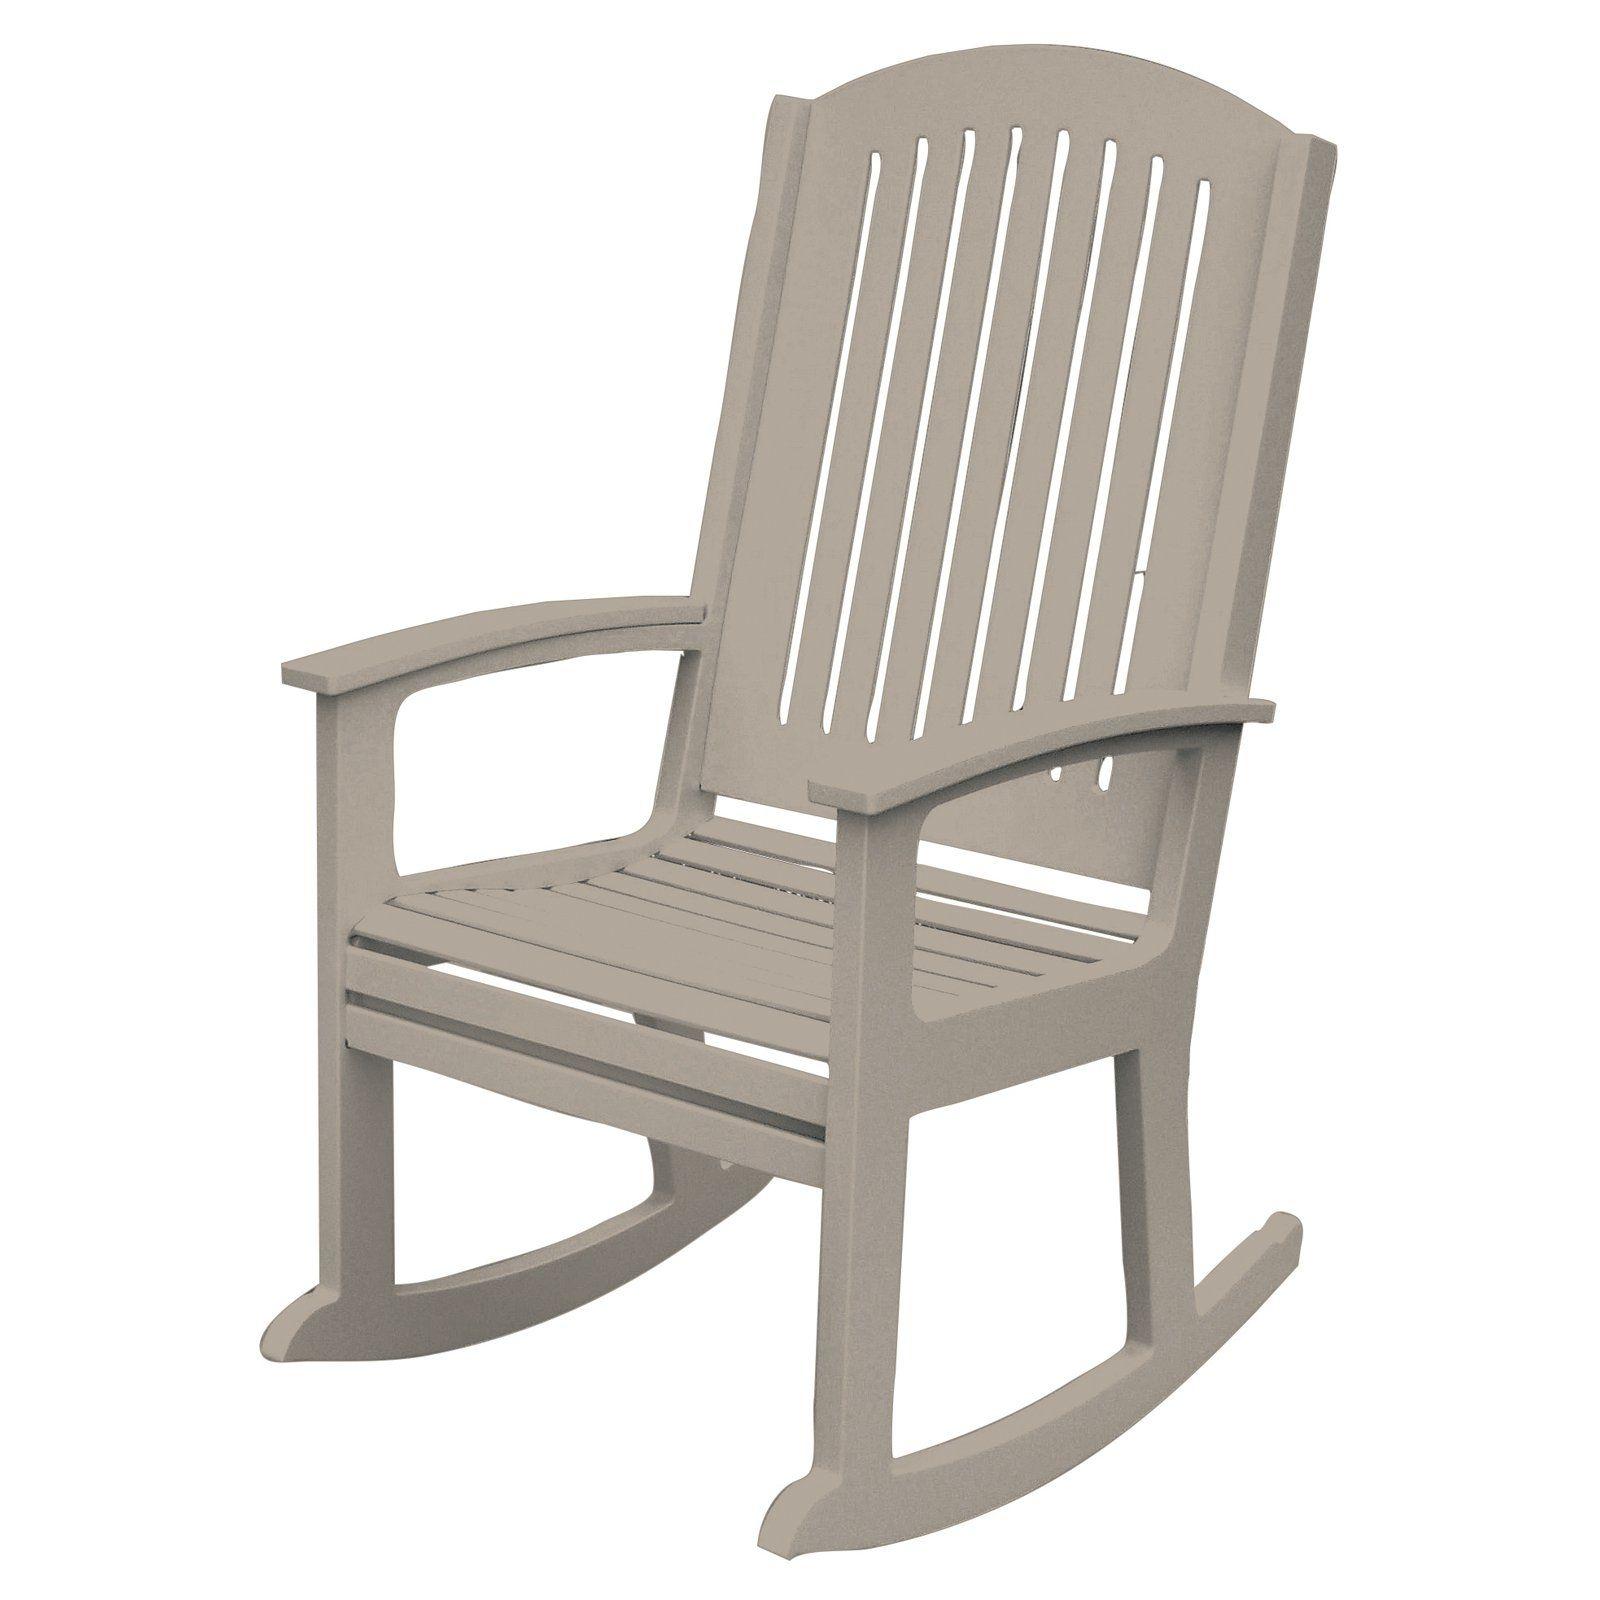 Poly Concepts Outdoor Andureflex High Back Rocker | From Hayneedle Pertaining To High Back Rocking Chairs (#11 of 15)